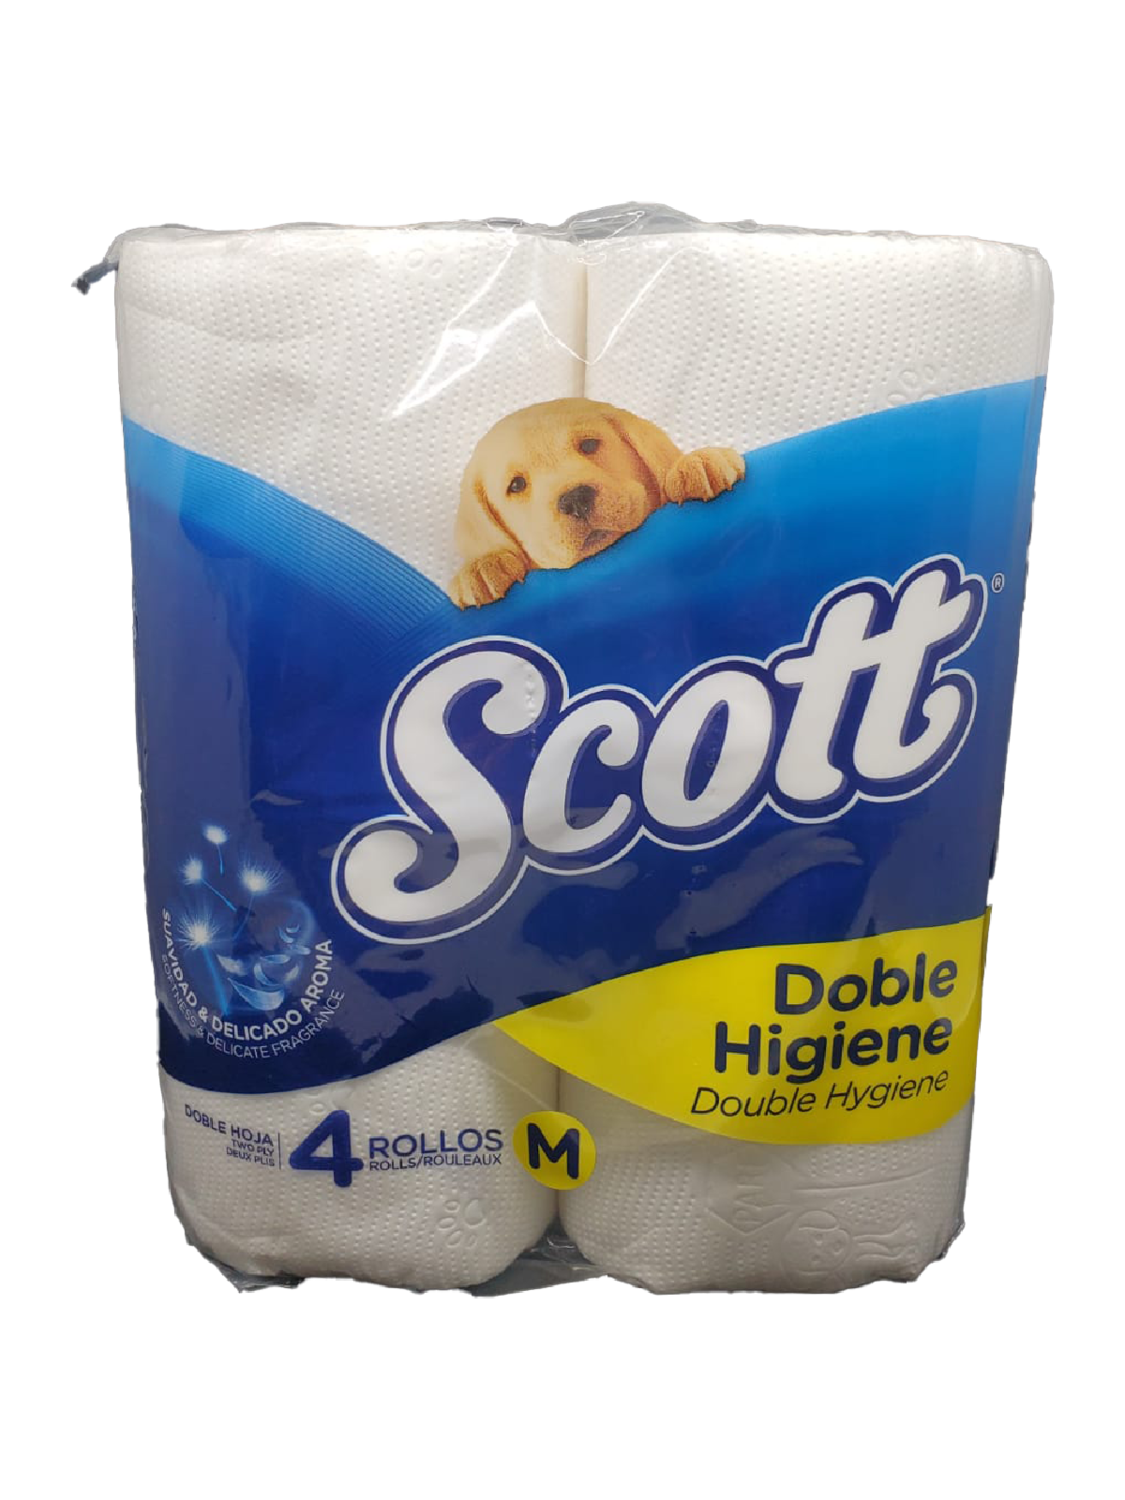 Scott Doble Higiene